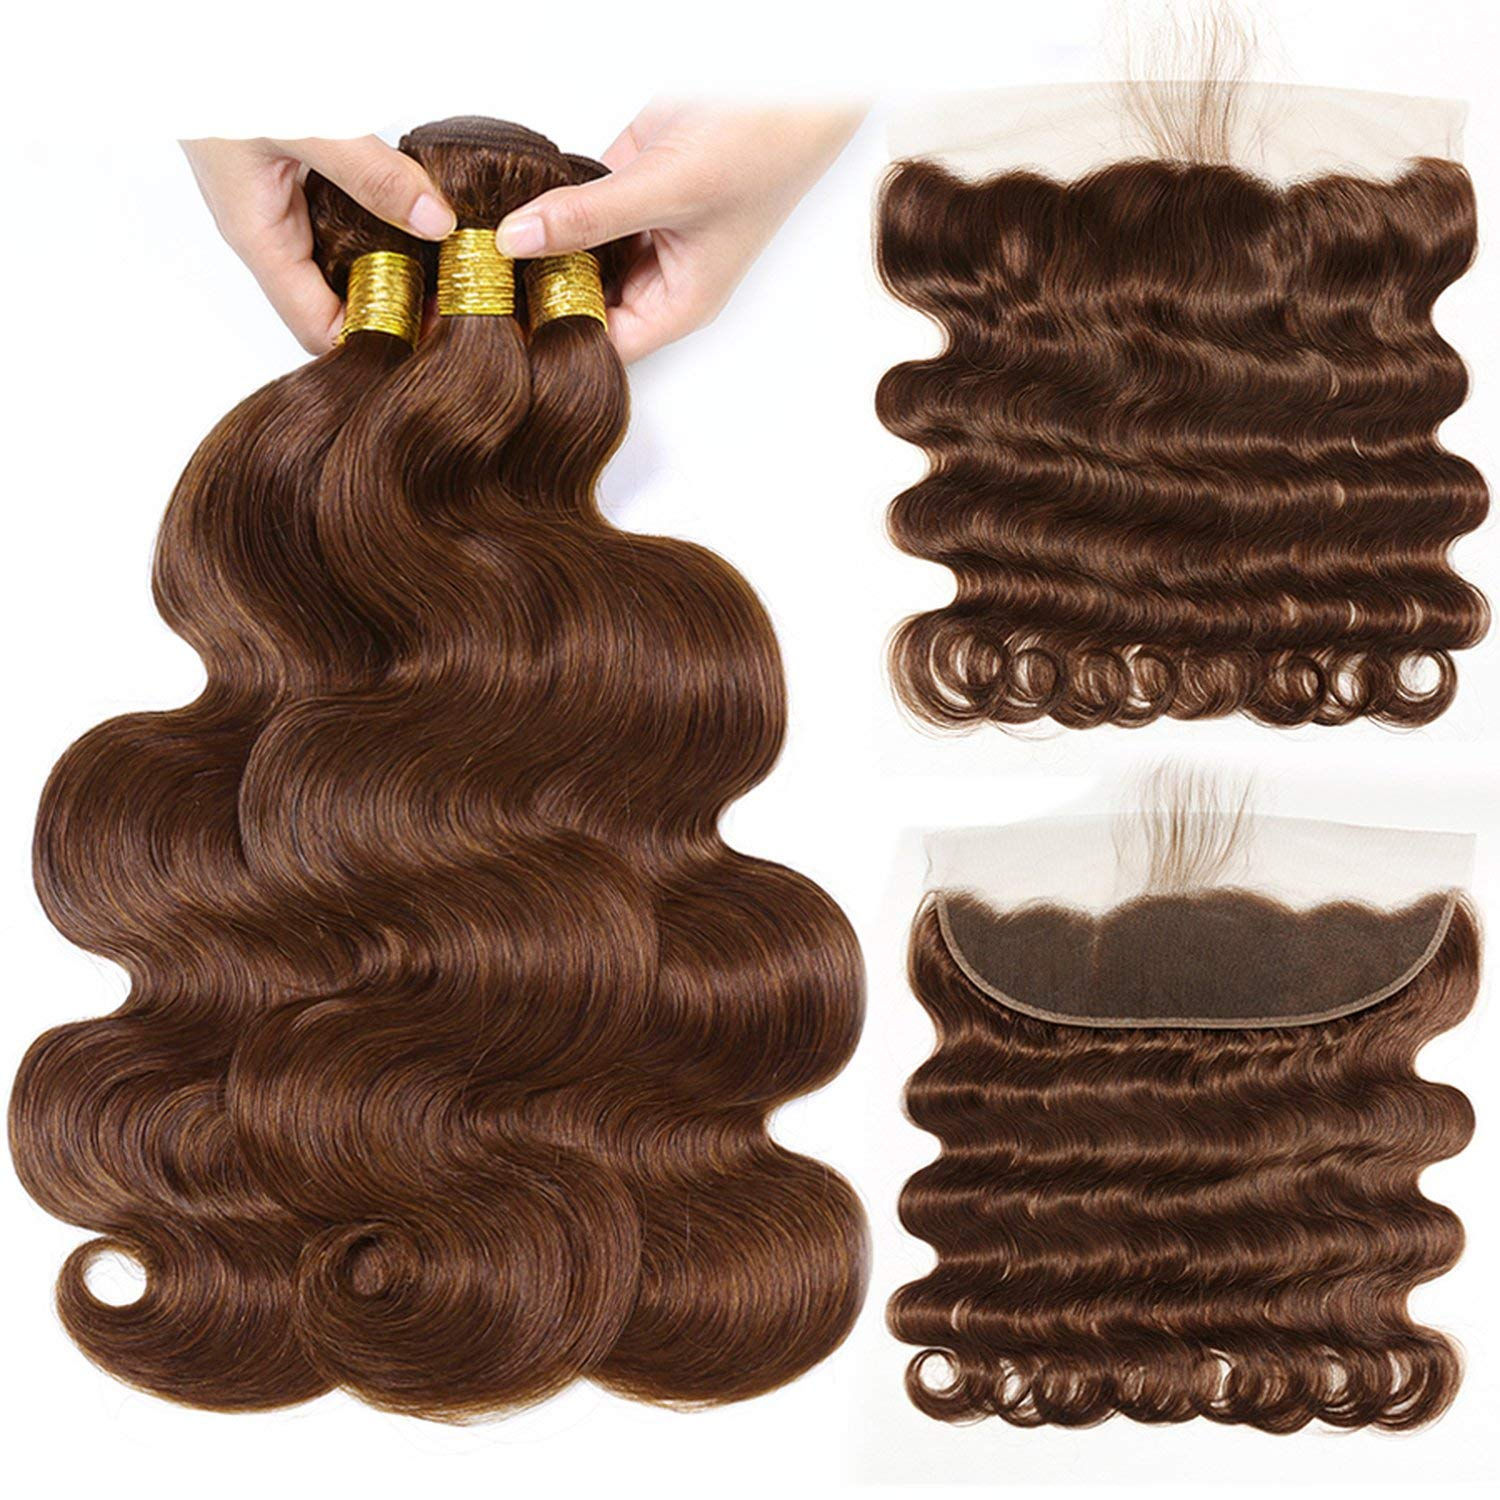 #4 Light Brown Body Wave Hair Bundles With Frontal Brazilian Hair Weave Bundles Human Hair Bundles Romantico NonRemy Hair Extension,20 20 20 & Closure18,Light Brown nonremy 81H9ErnWxgL